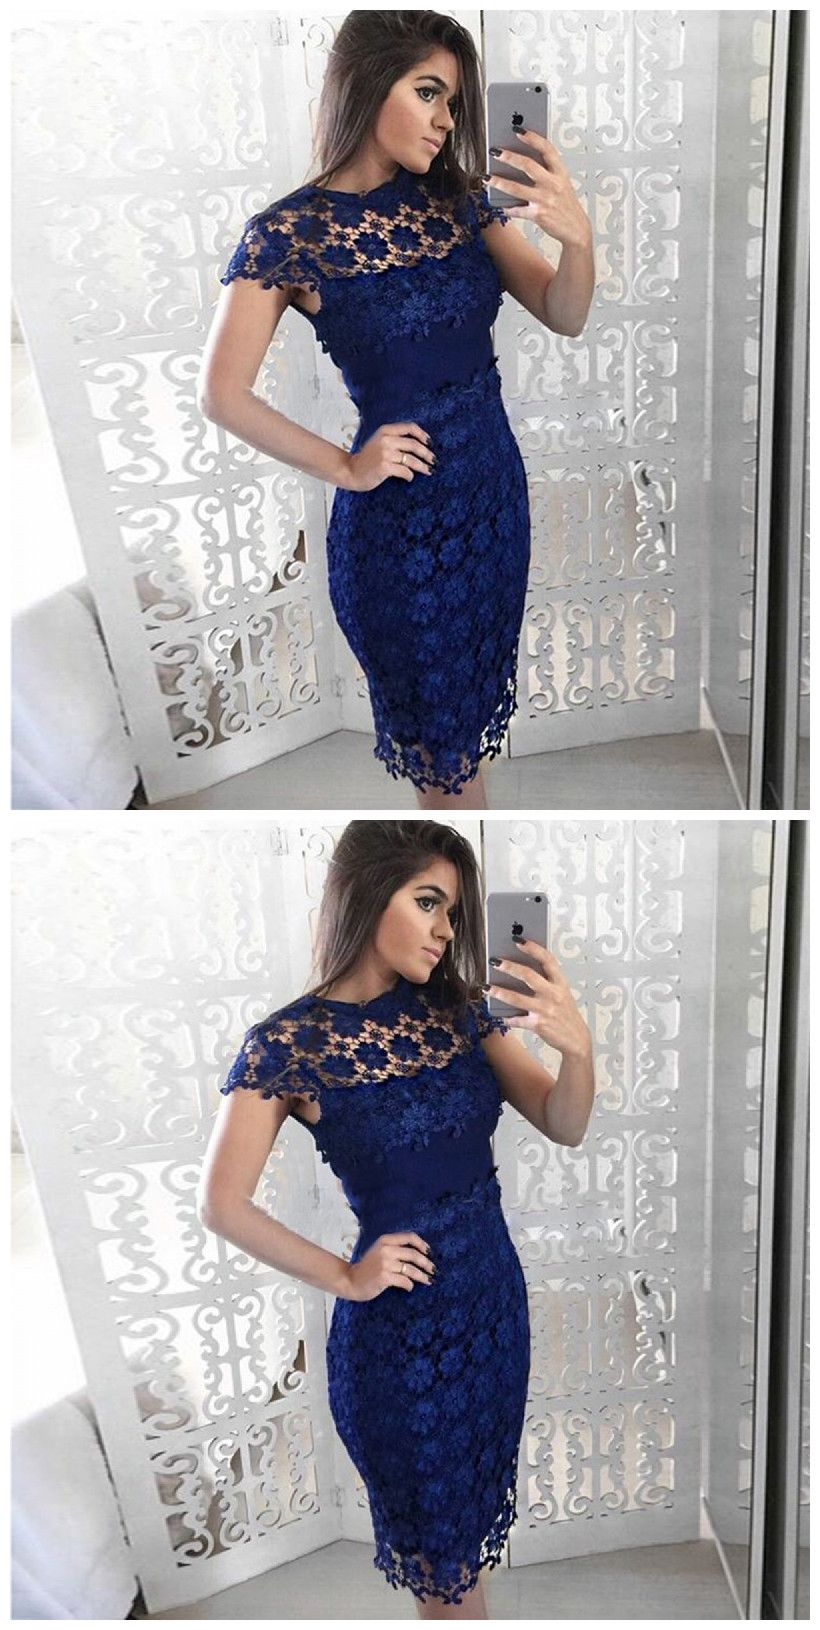 9b4c34997c8 Sheath Round Neck Cap Sleeve Royal Blue Lace  Short Homecoming Dress  Homecoming  Dresses  Short Prom Dresses  Short Cocktail Dresses  Homecoming Dresses